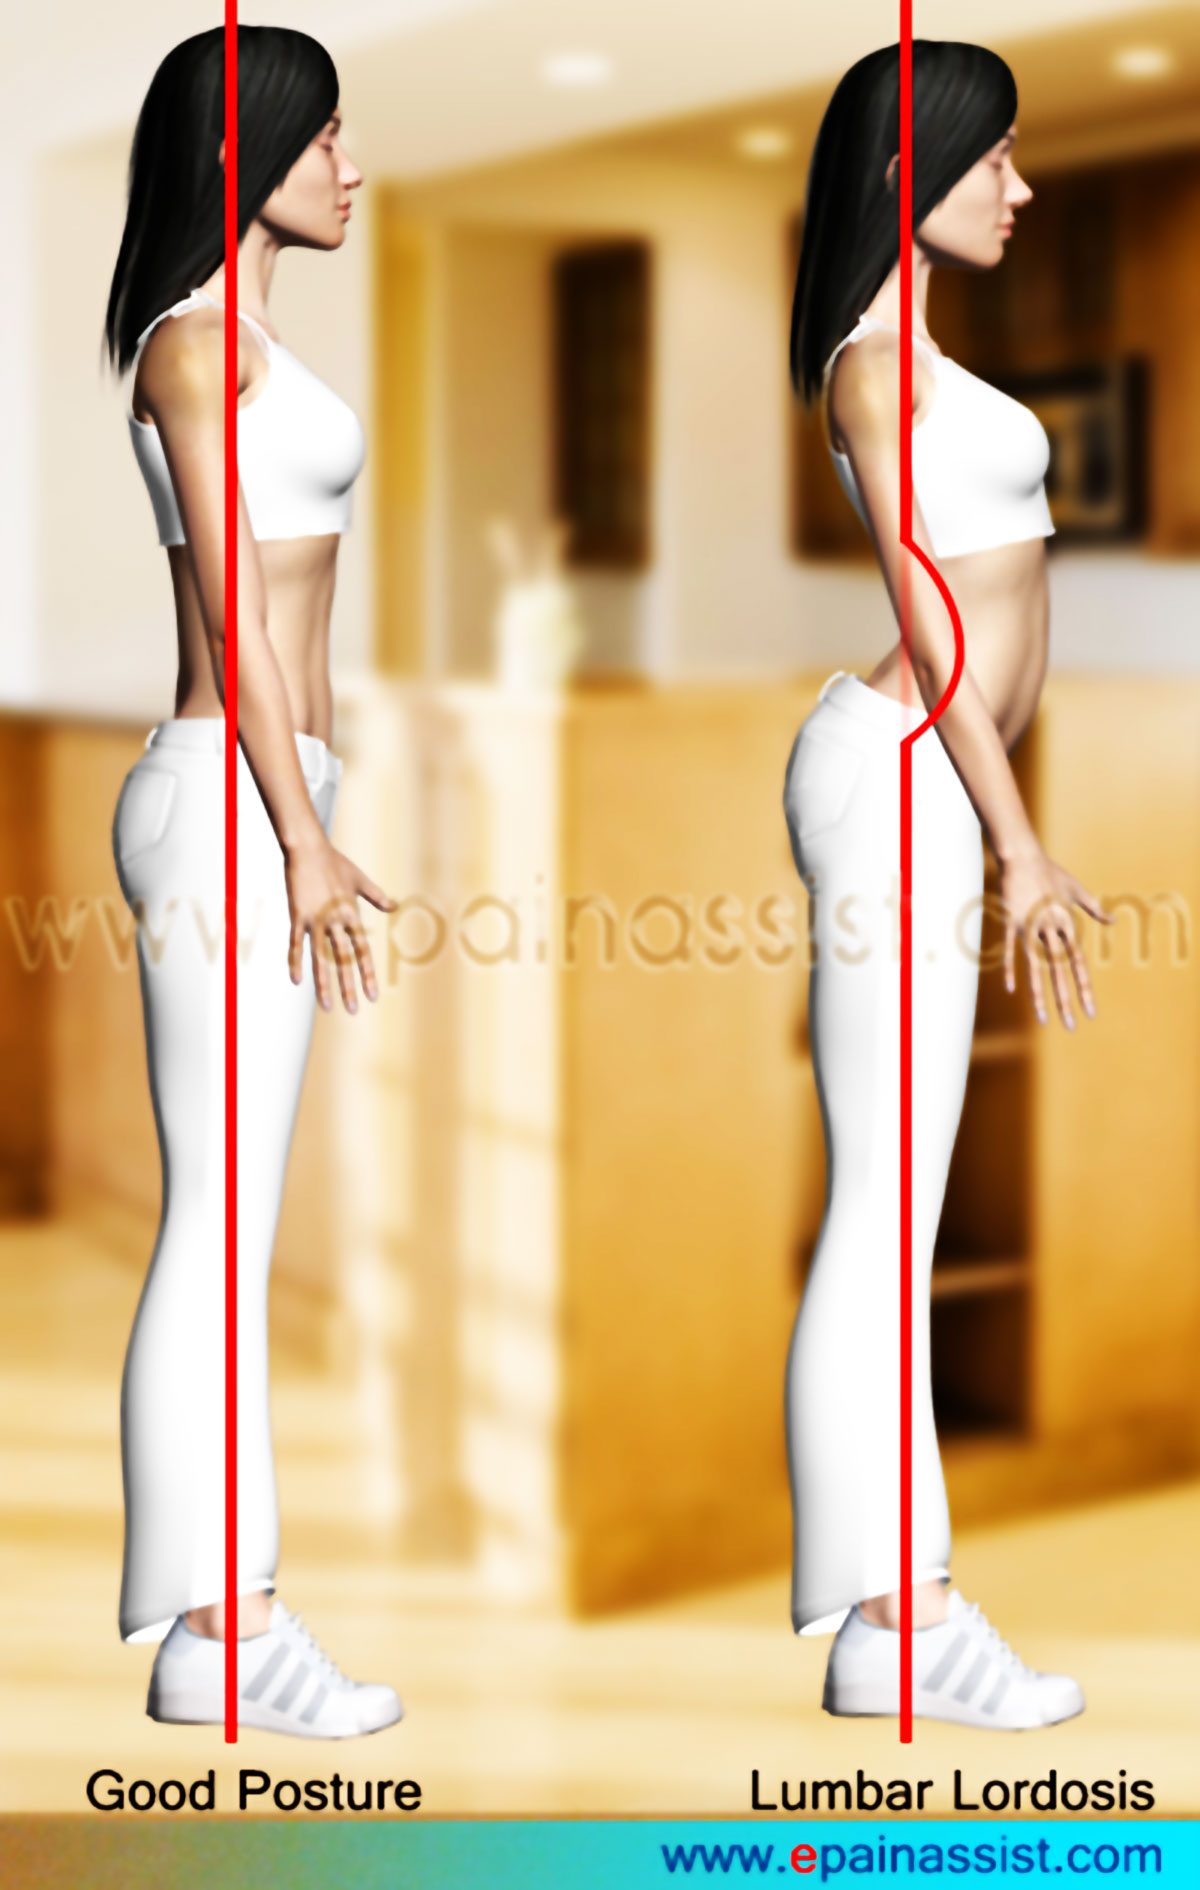 http://cdn-0.epainassist.com/images/Article-Images/Lordosis.jpg